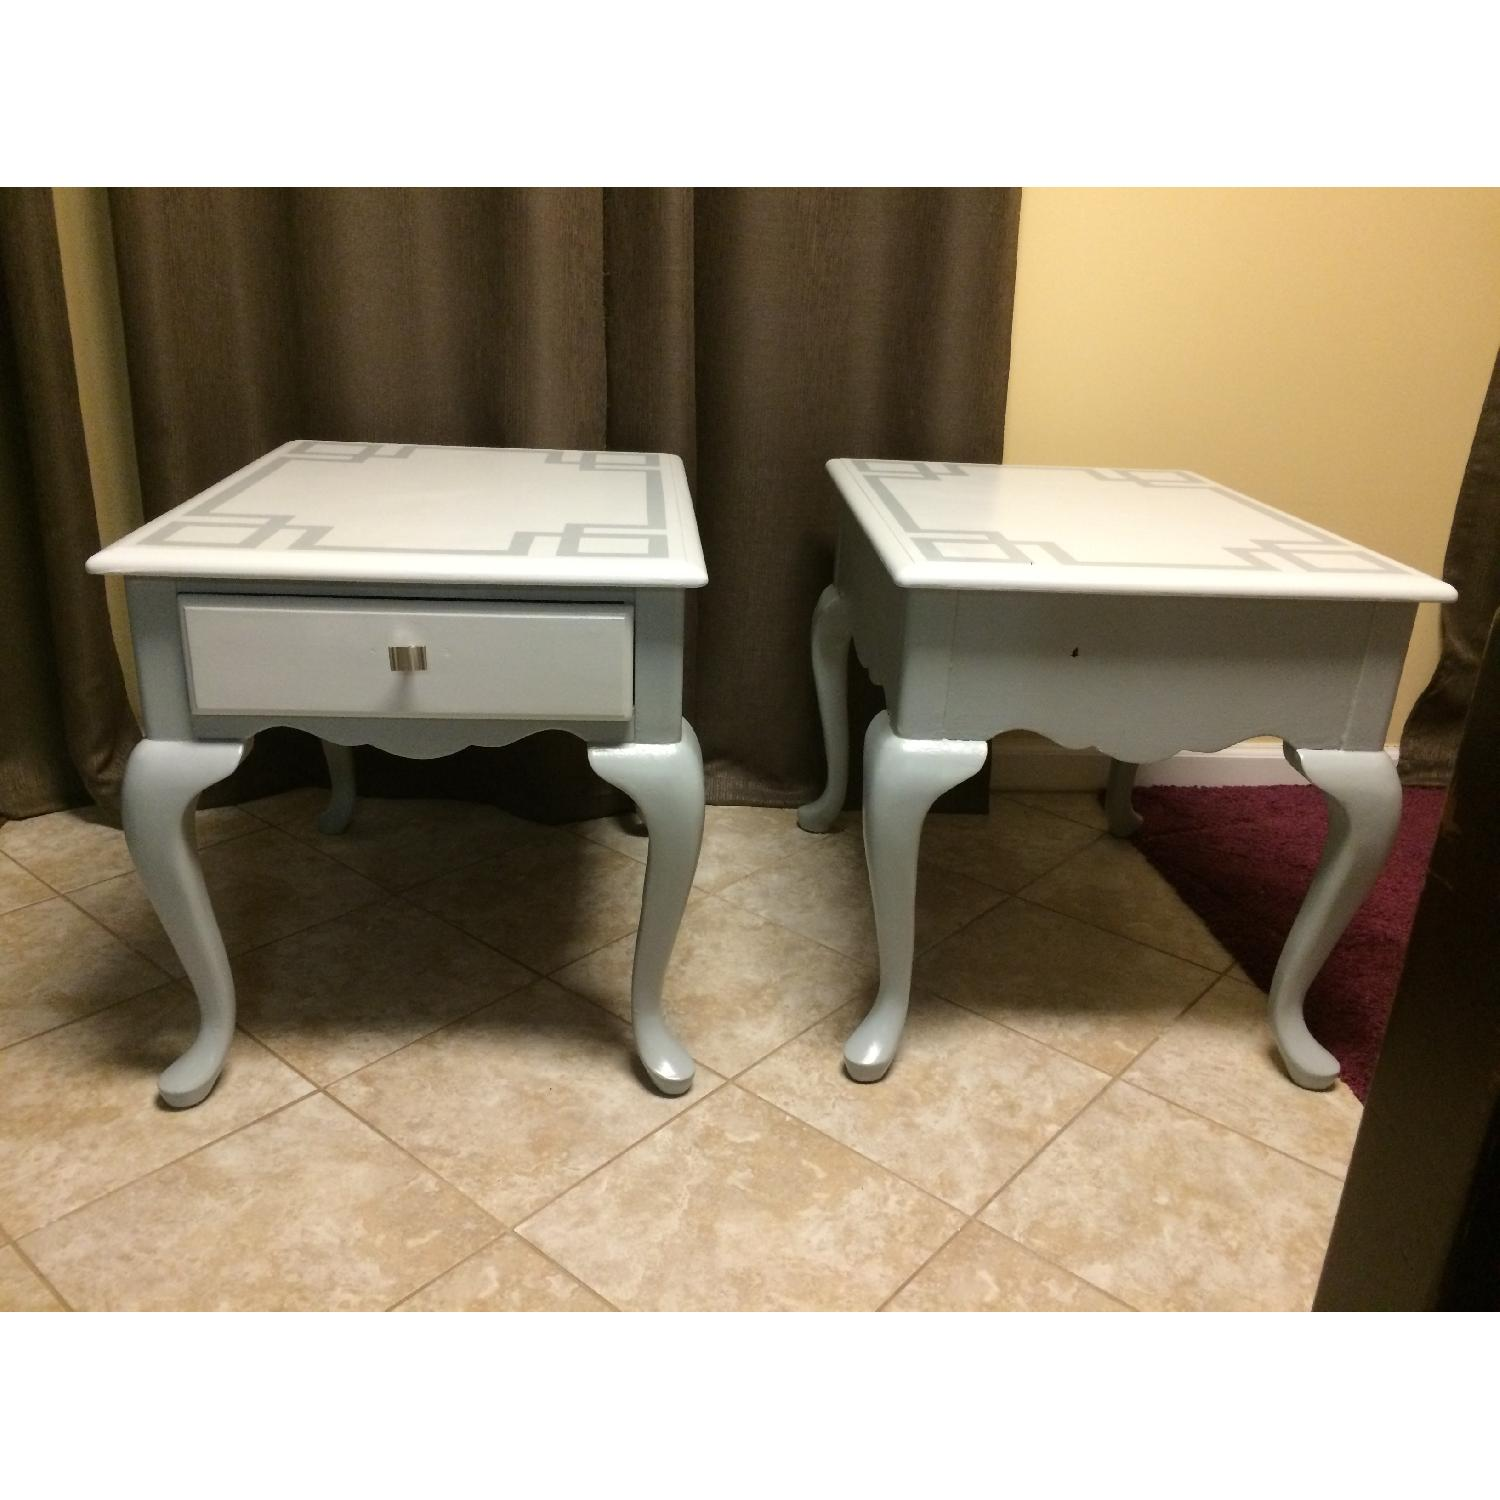 Ethan Allan Queen Anne Styled Side Tables in Gray - Pair - image-1